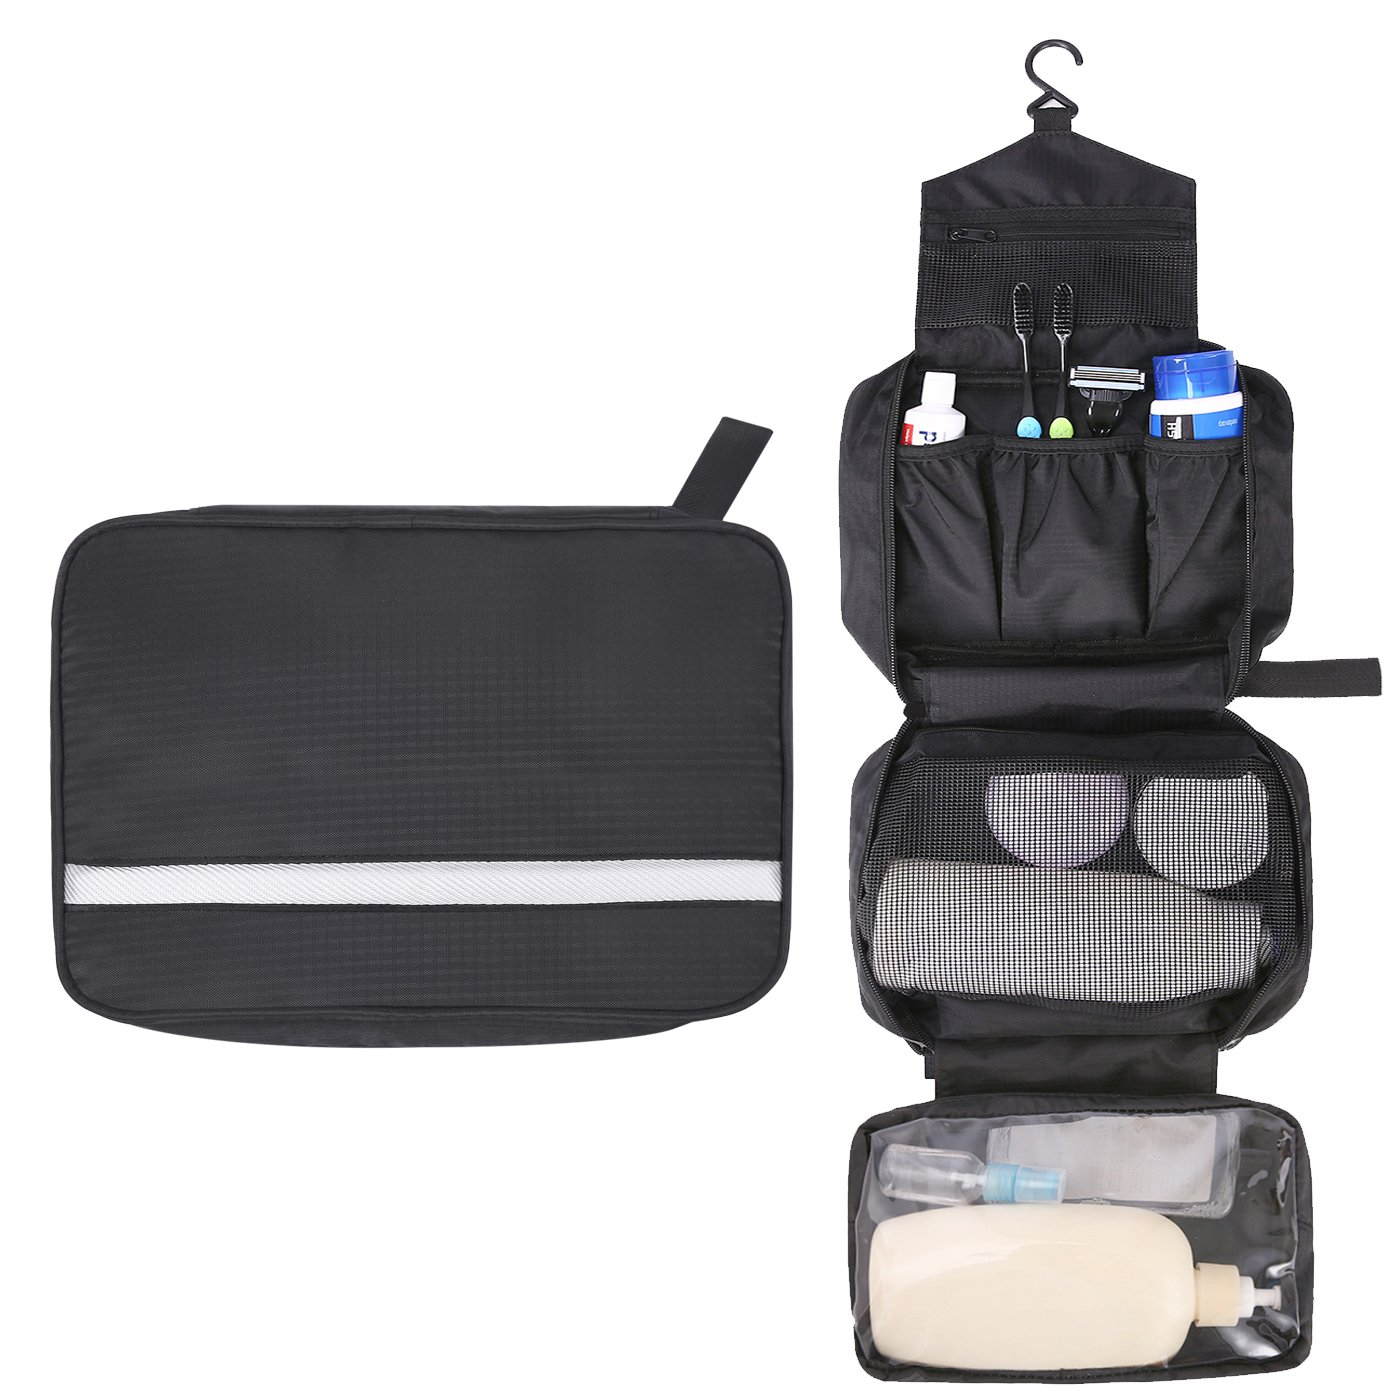 HDE Hanging Toiletry Bag Six Compartment Travel Kit for Men and Women Personal Care and Cosmetic Organizer Pouch with Mesh and Clear Pockets - Black